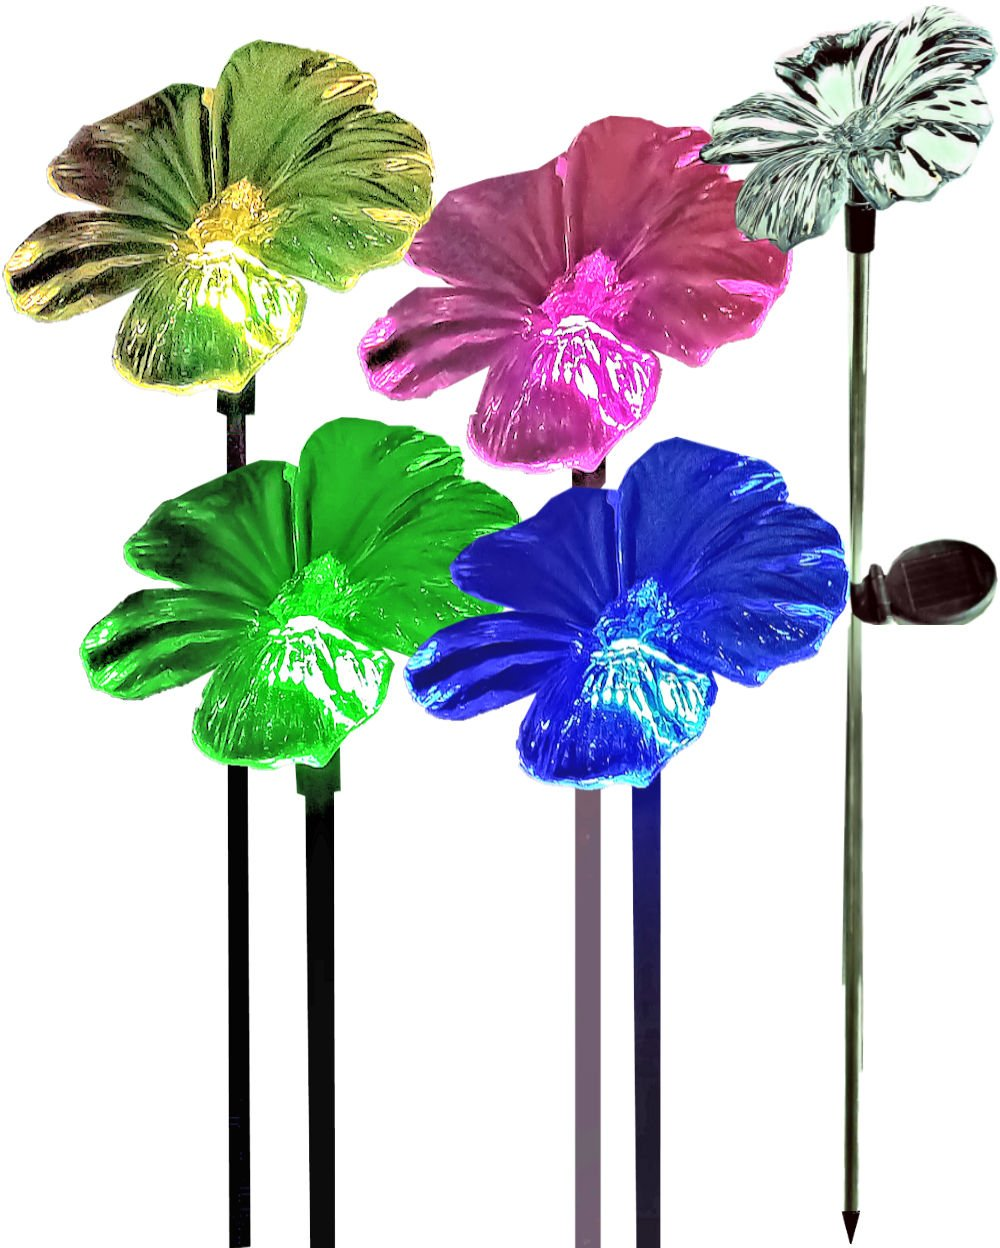 BRILLIANT AND MO Brilliant & Mo Set of 2 Acrylic Trumpet Flower Garden Stakes Solar Flower Light For Home Patio Deck Lawn Yard Decor